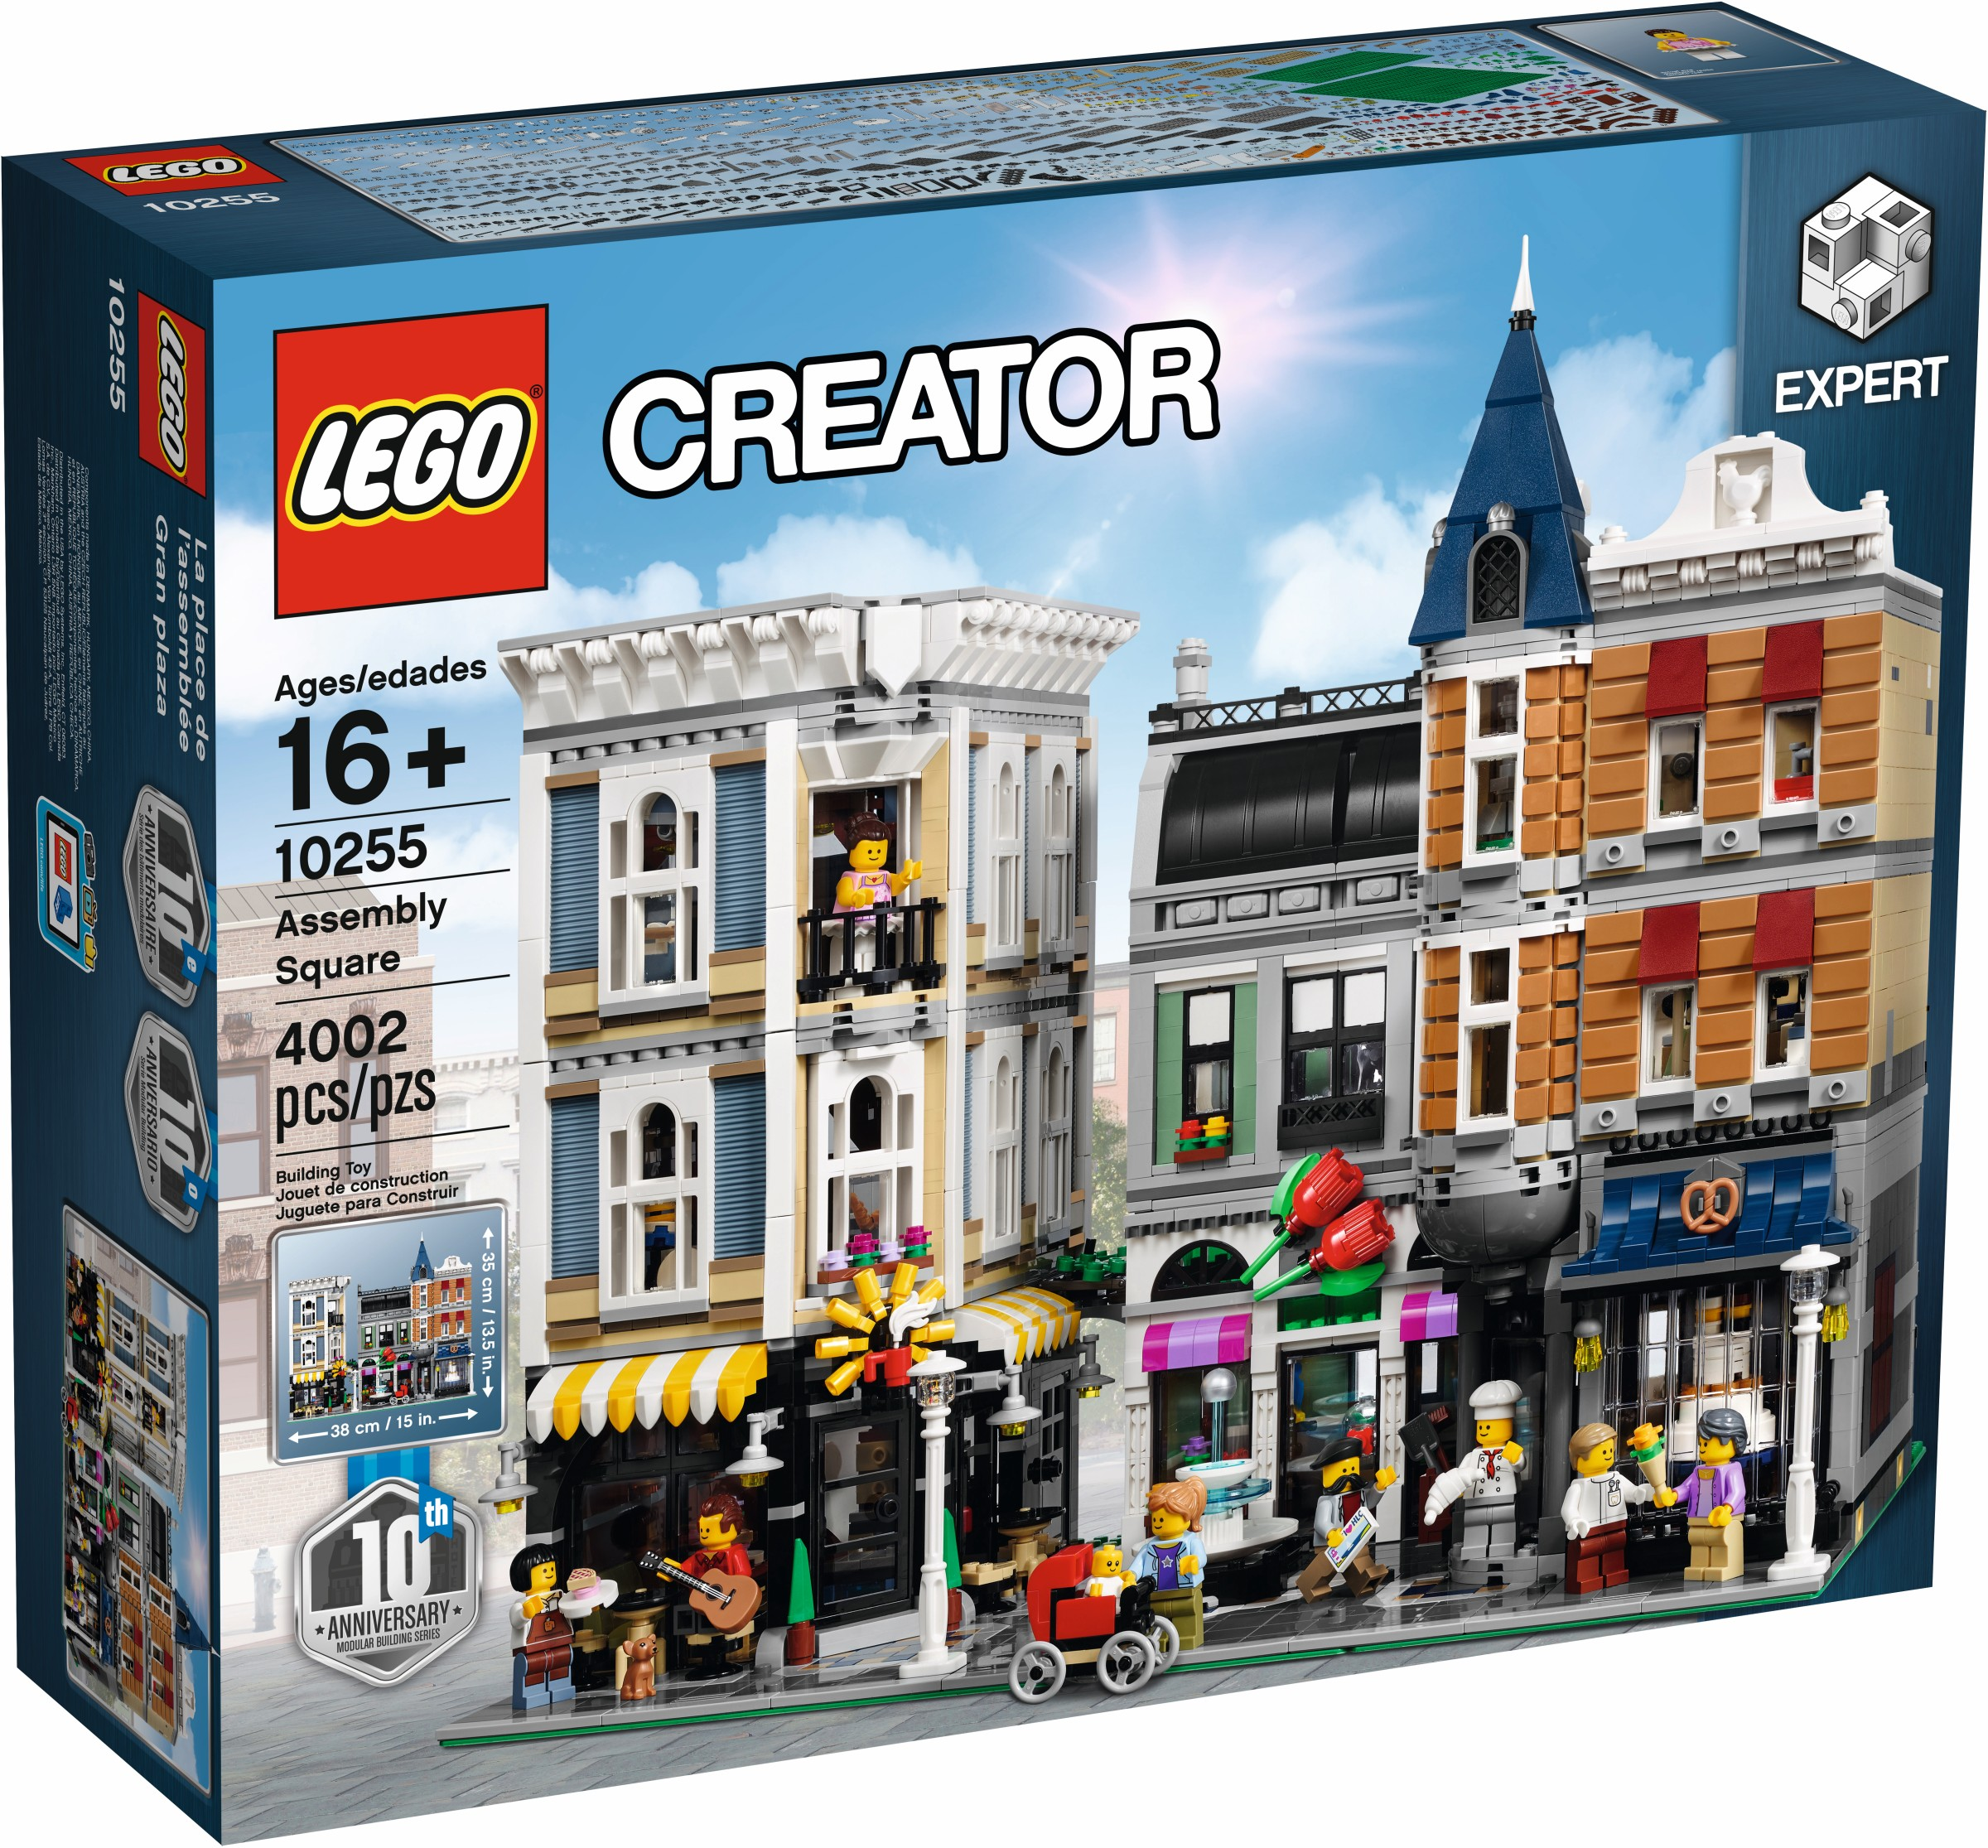 LEGO Creator Expert 10255 Assembly Square review | Brickset